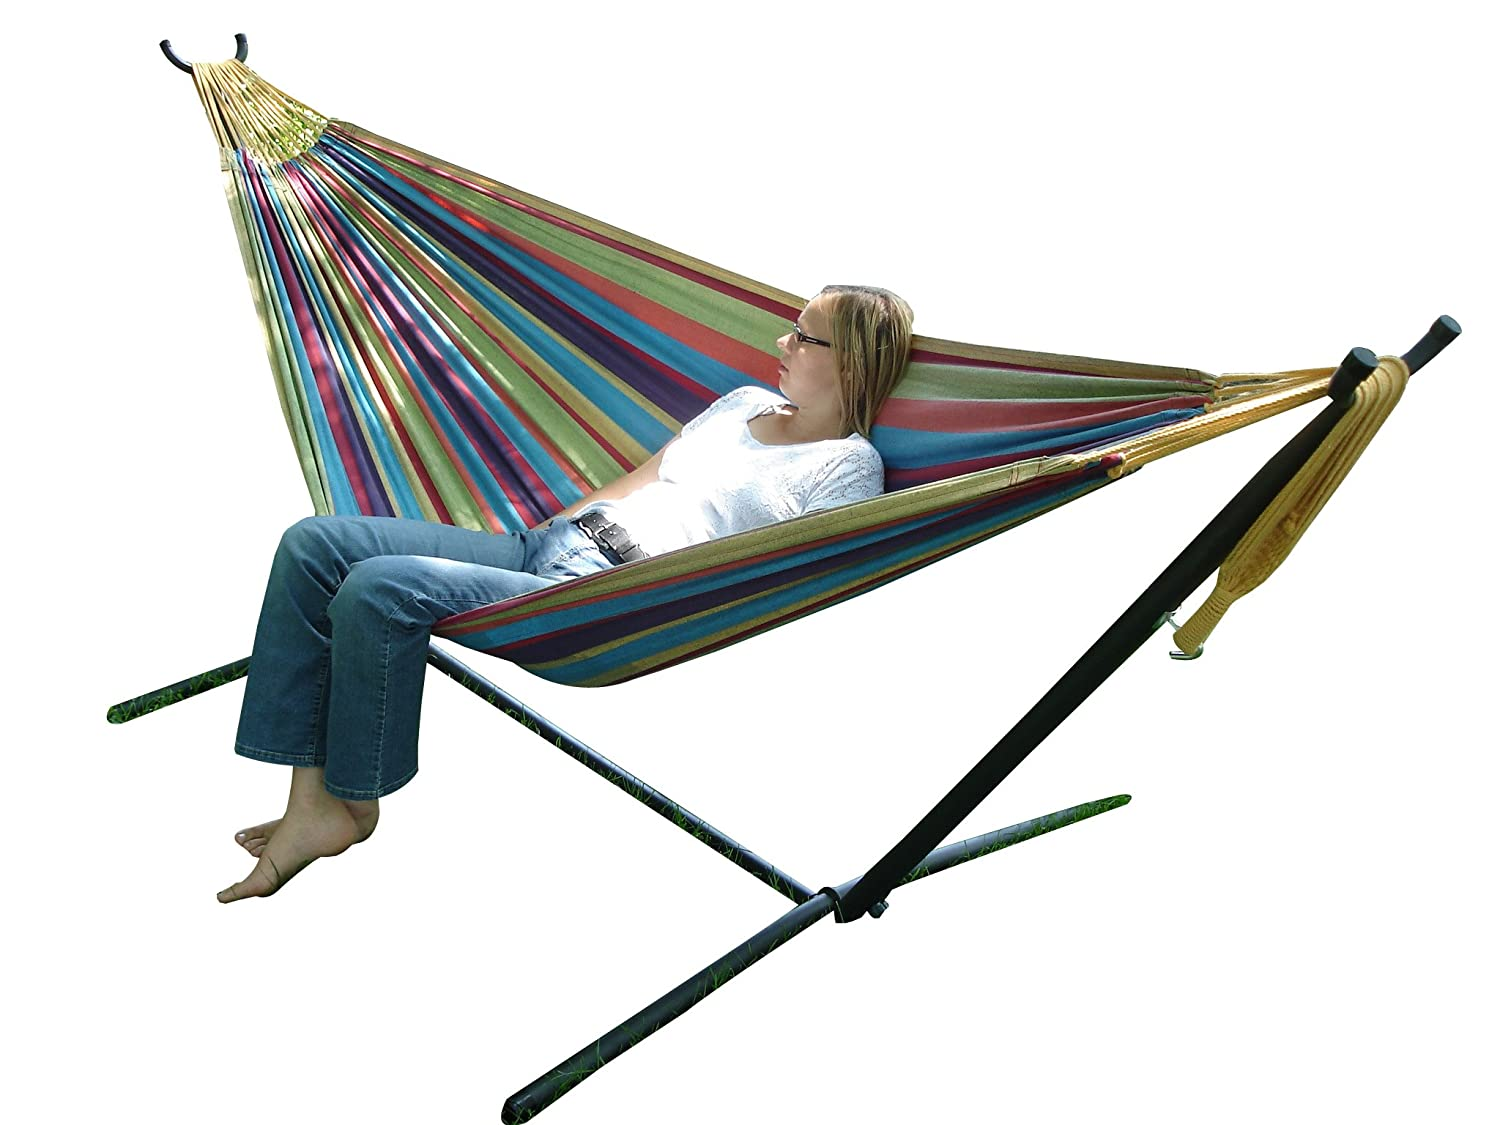 Vivere UHSDO9 Double Hammock with Space-Saving Steel Stand – Tropical $94.9